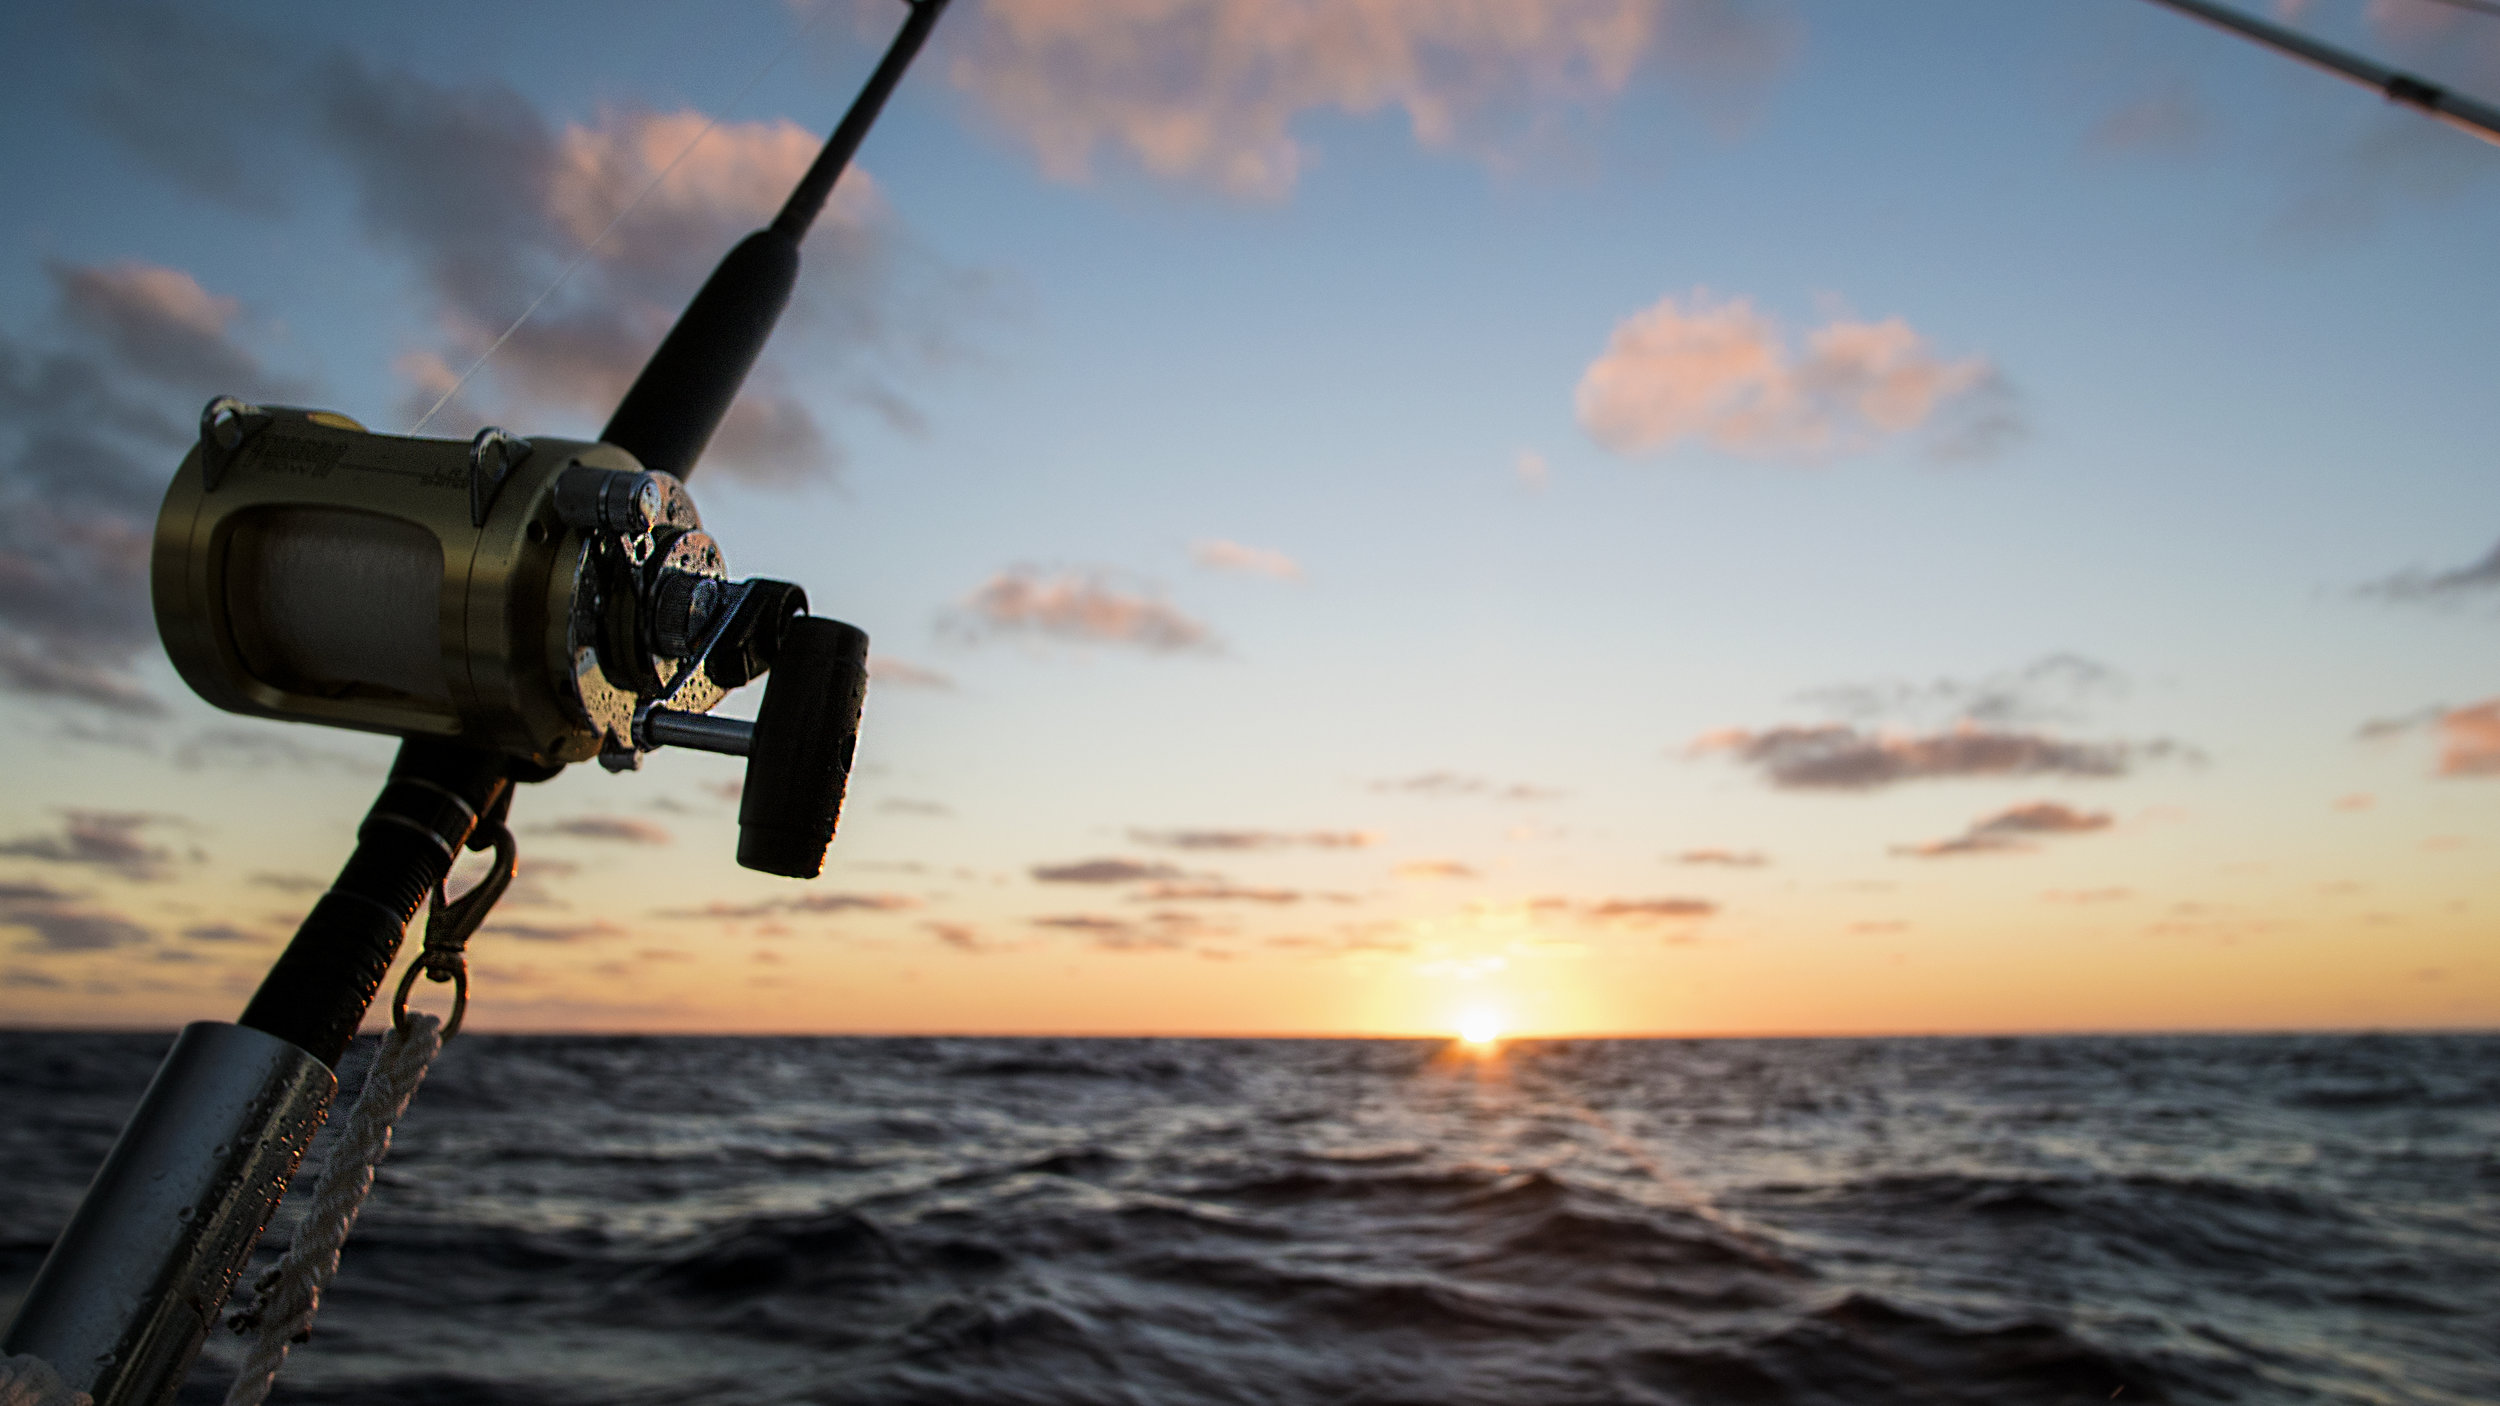 Fishing & crabbing - Long Beach Island is a pristine environment for both fishing & crabbing. Grab a pole and fish off the beach, off the bay docks or grab a boat and wait for tight lines!